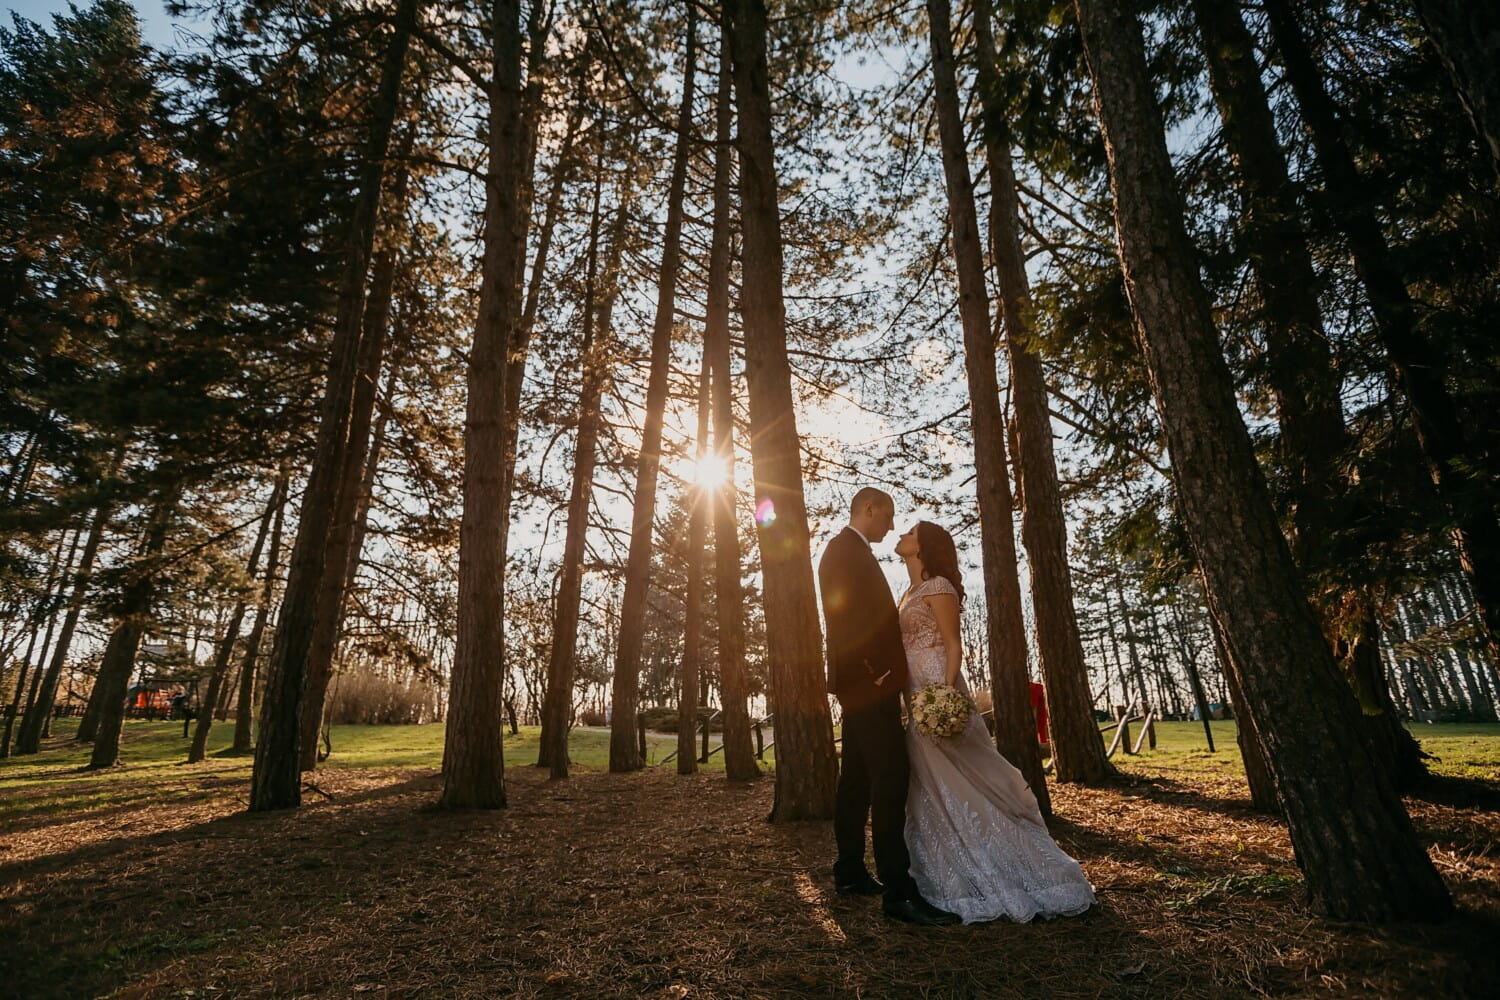 sunset, bride, romantic, groom, forest, love date, backlight, park, wedding, wood